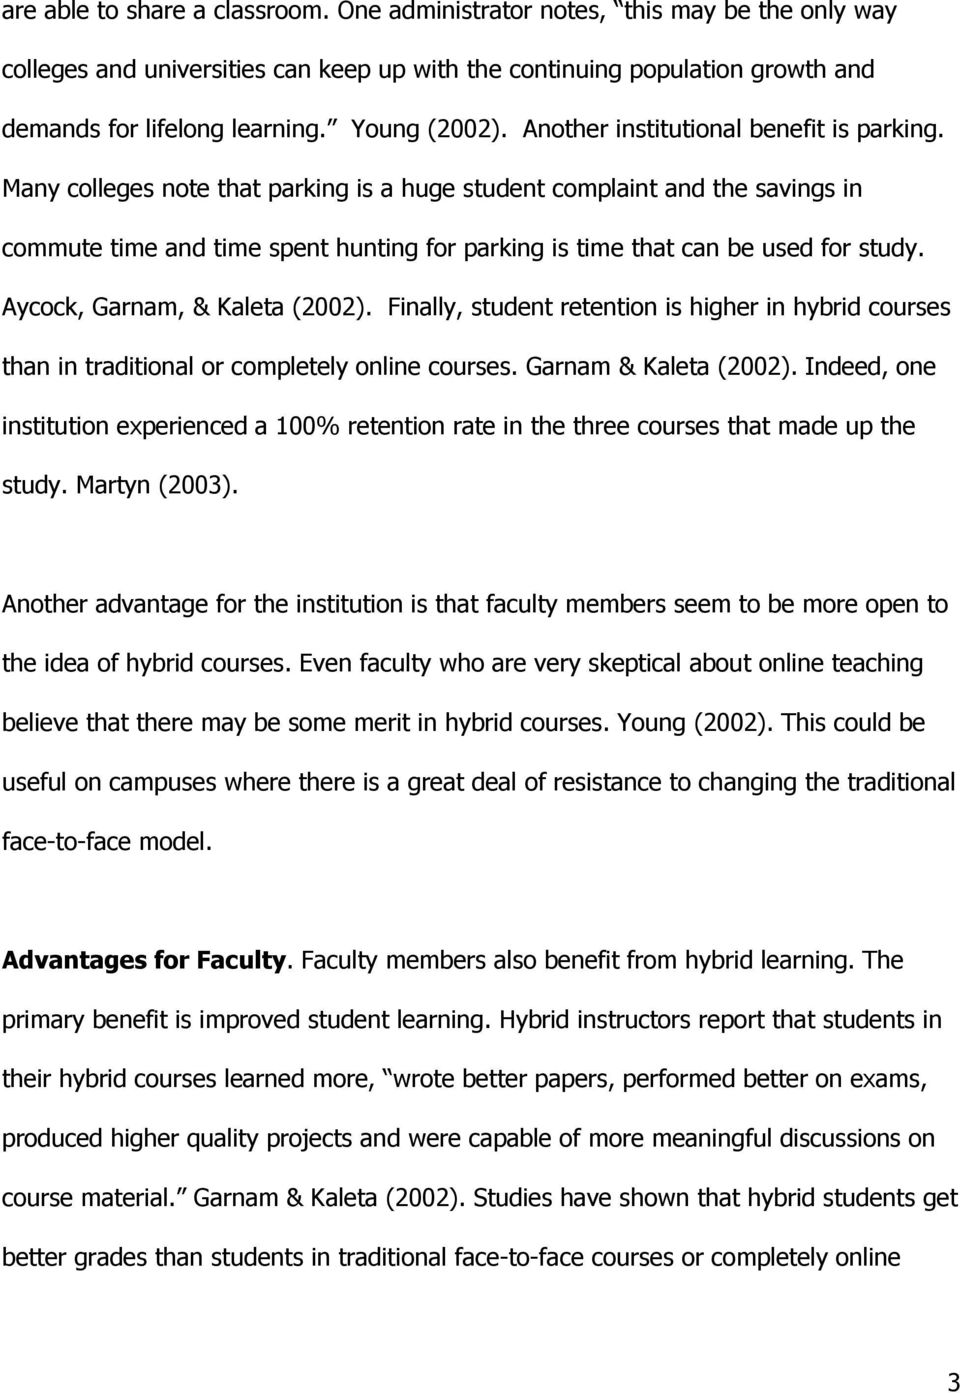 Many colleges note that parking is a huge student complaint and the savings in commute time and time spent hunting for parking is time that can be used for study. Aycock, Garnam, & Kaleta (2002).